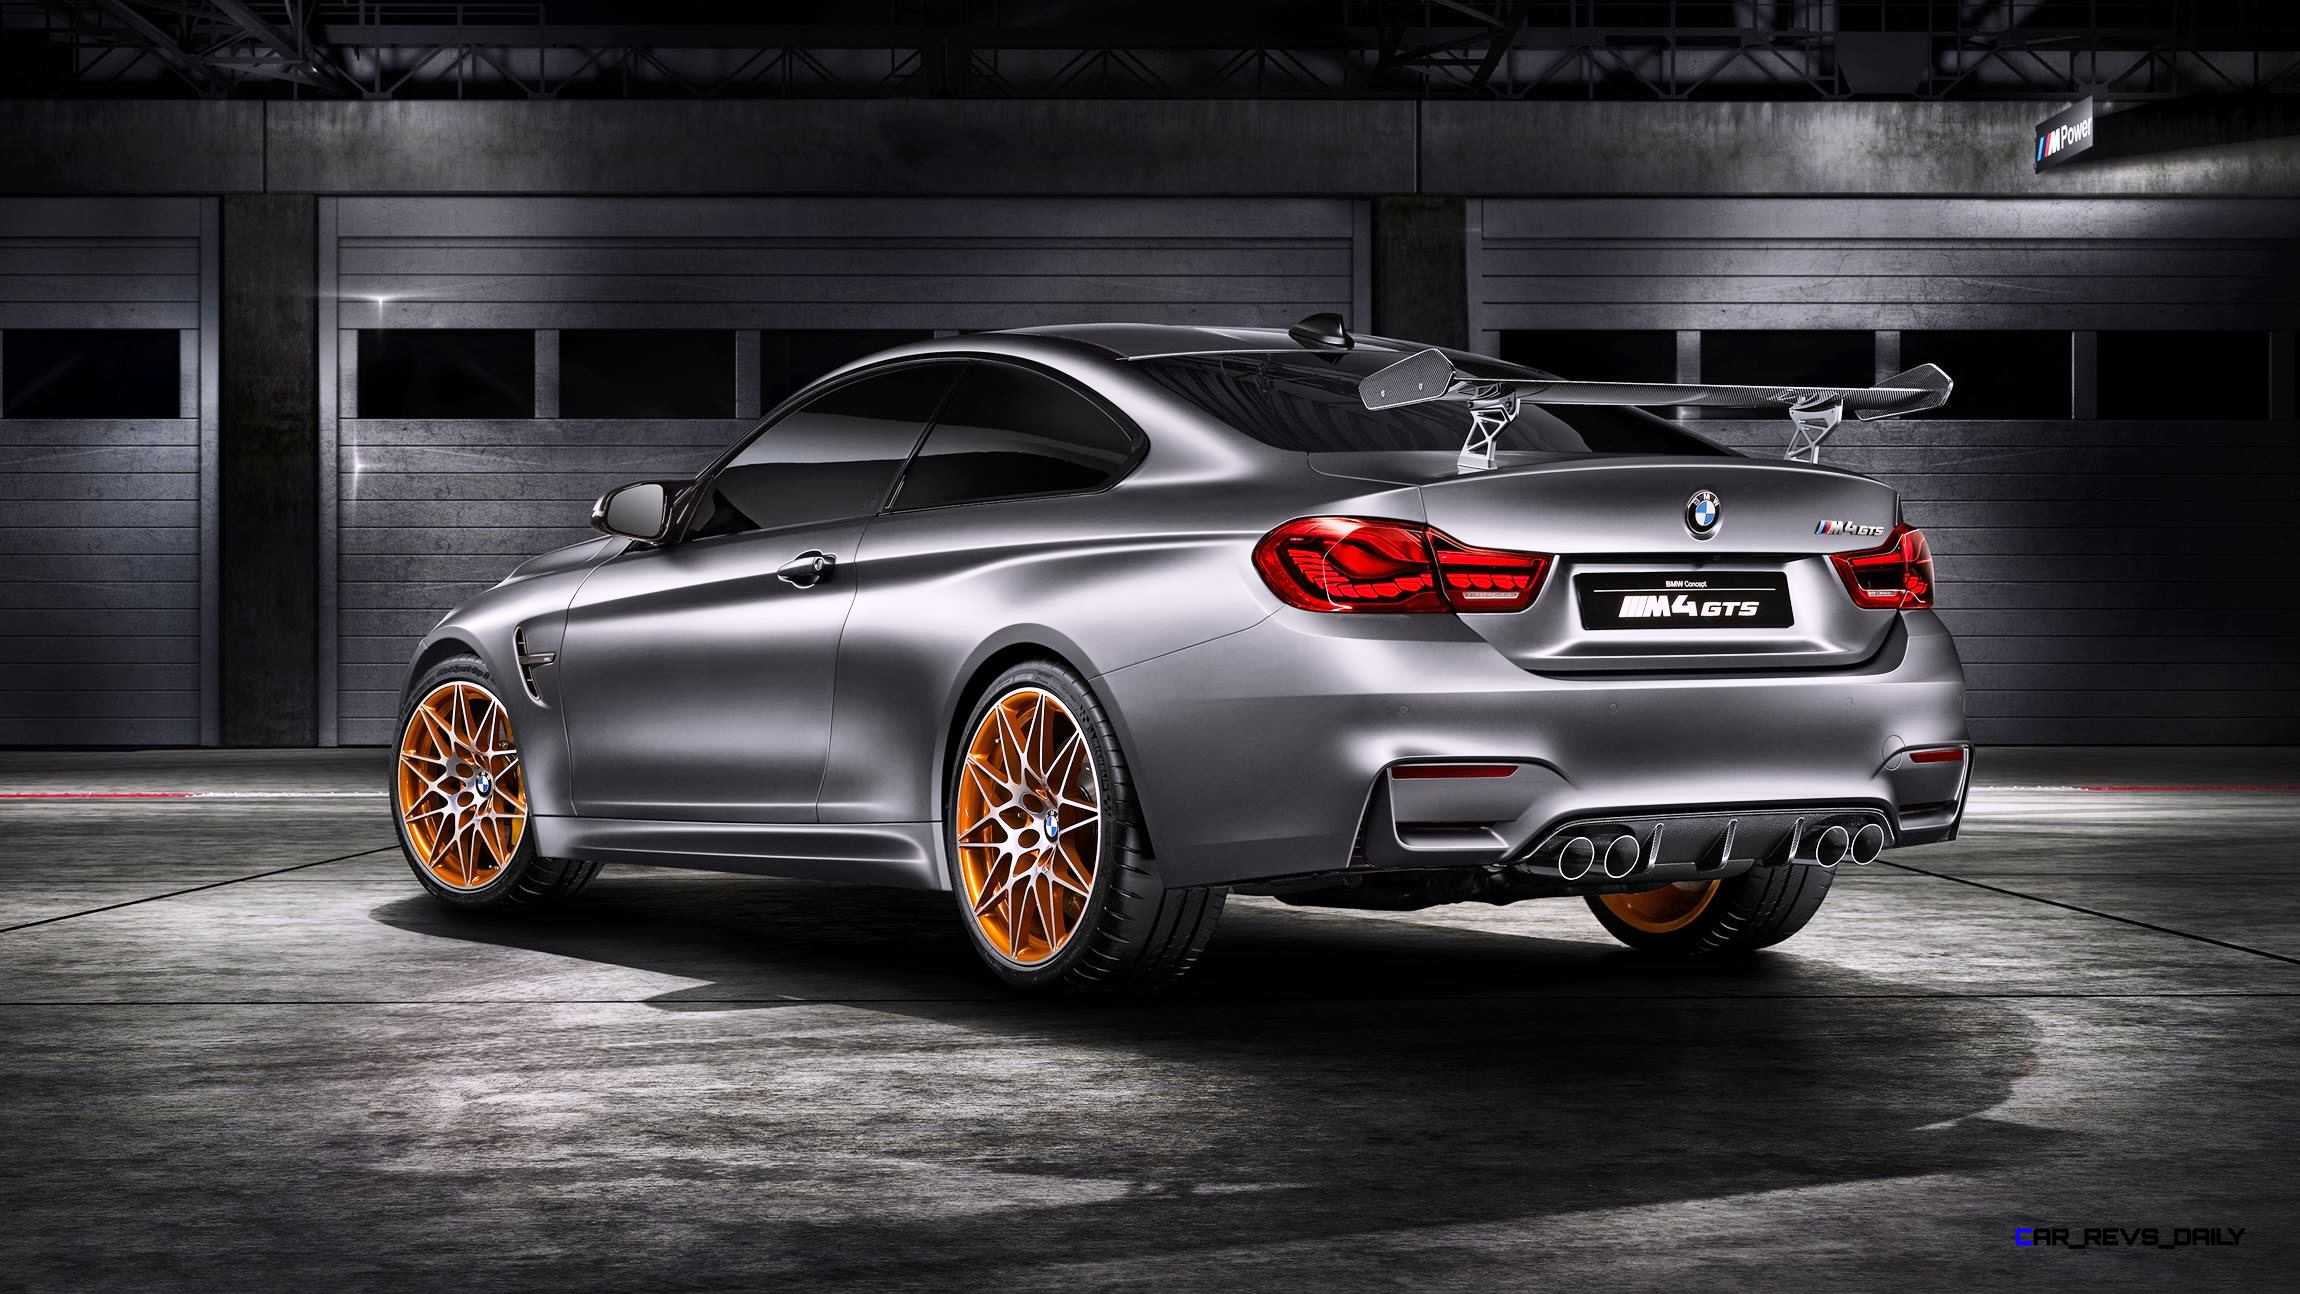 m4 gts bmw turbo concept